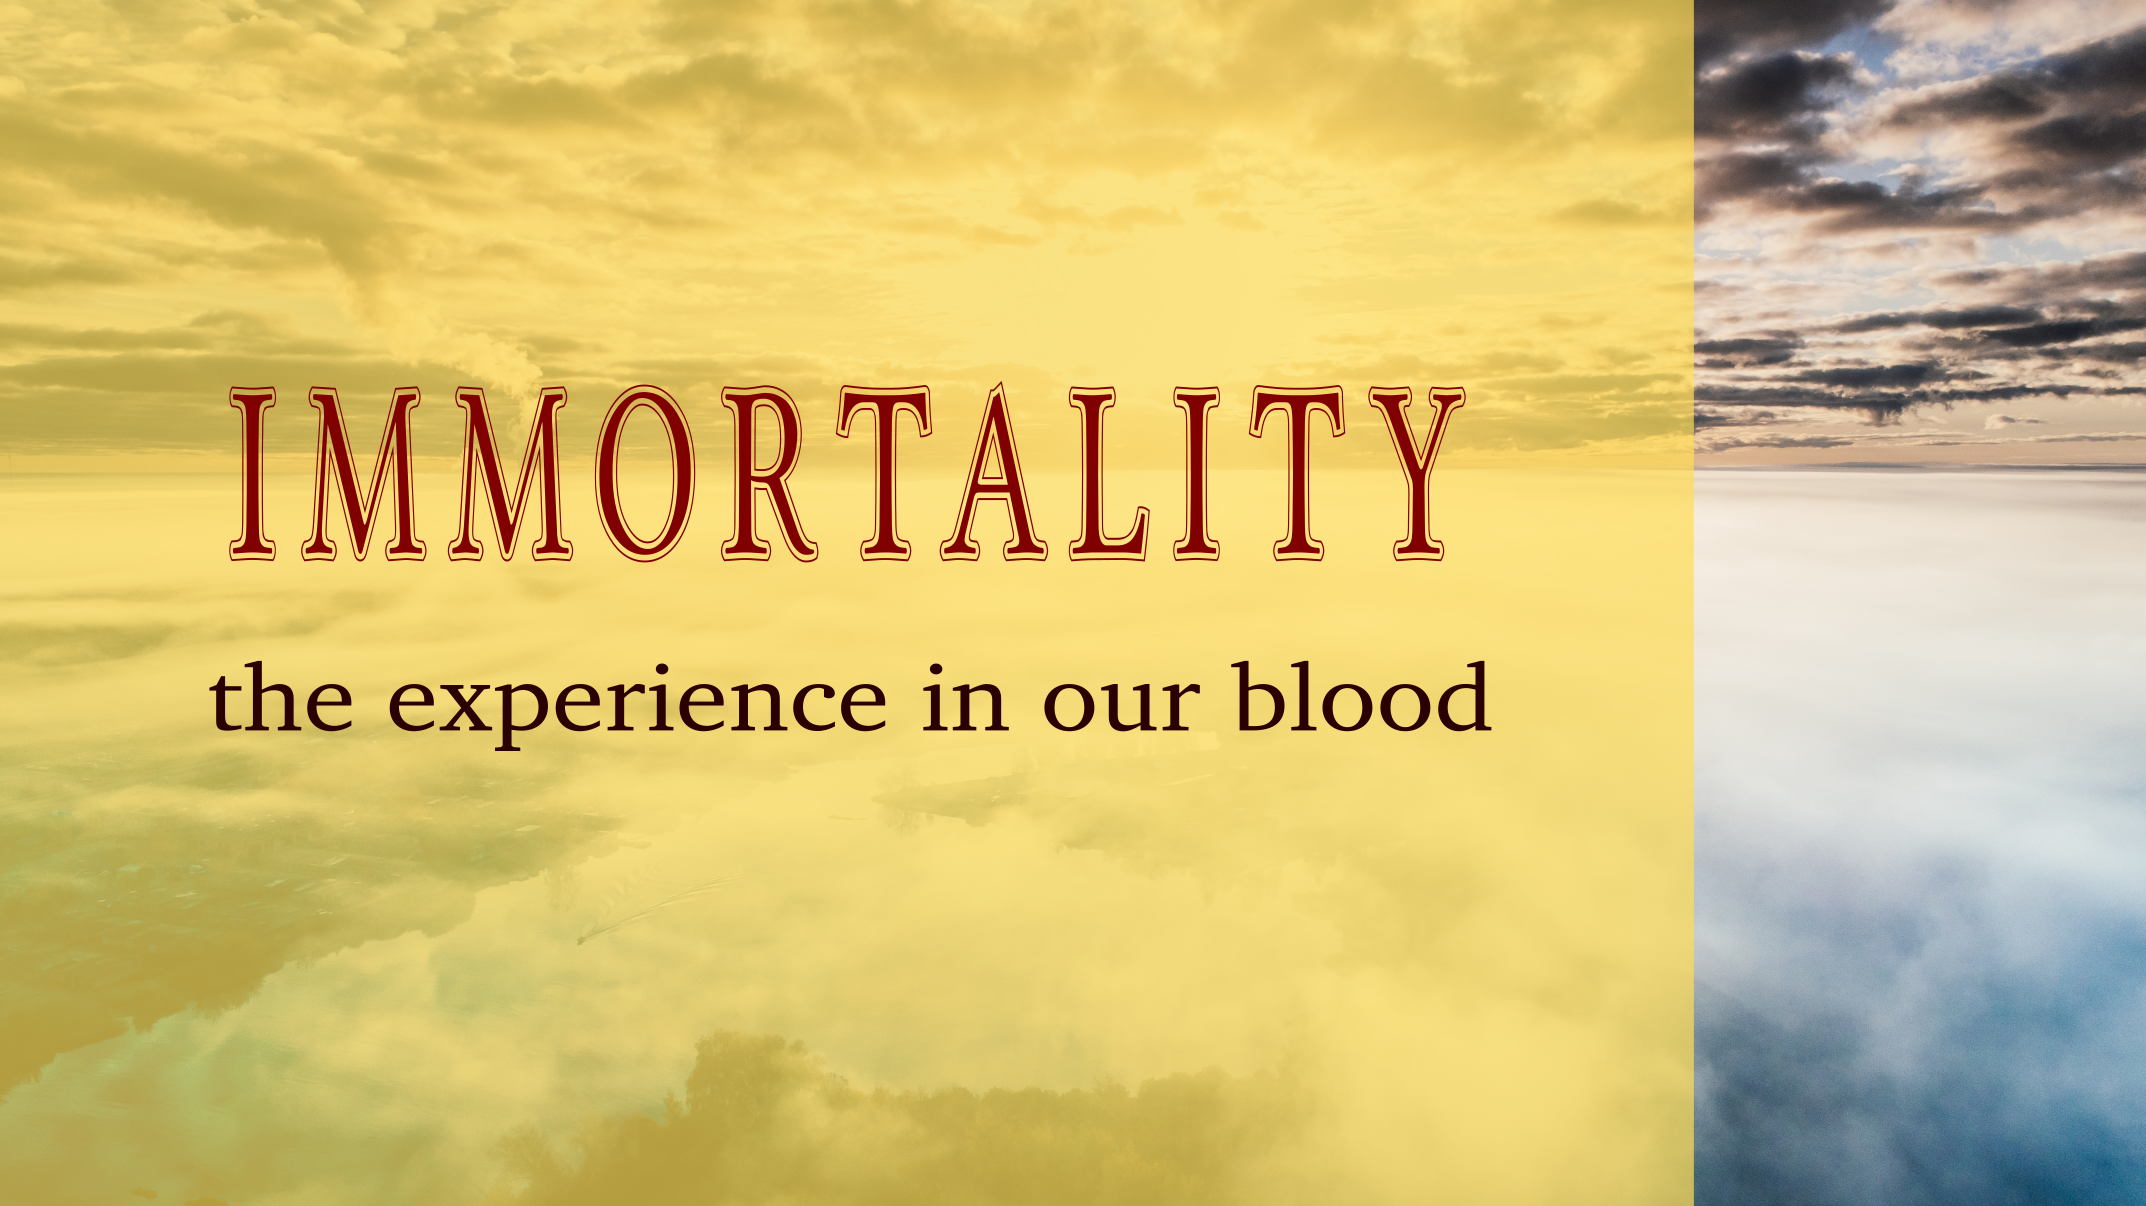 Immortality the experience in our blood